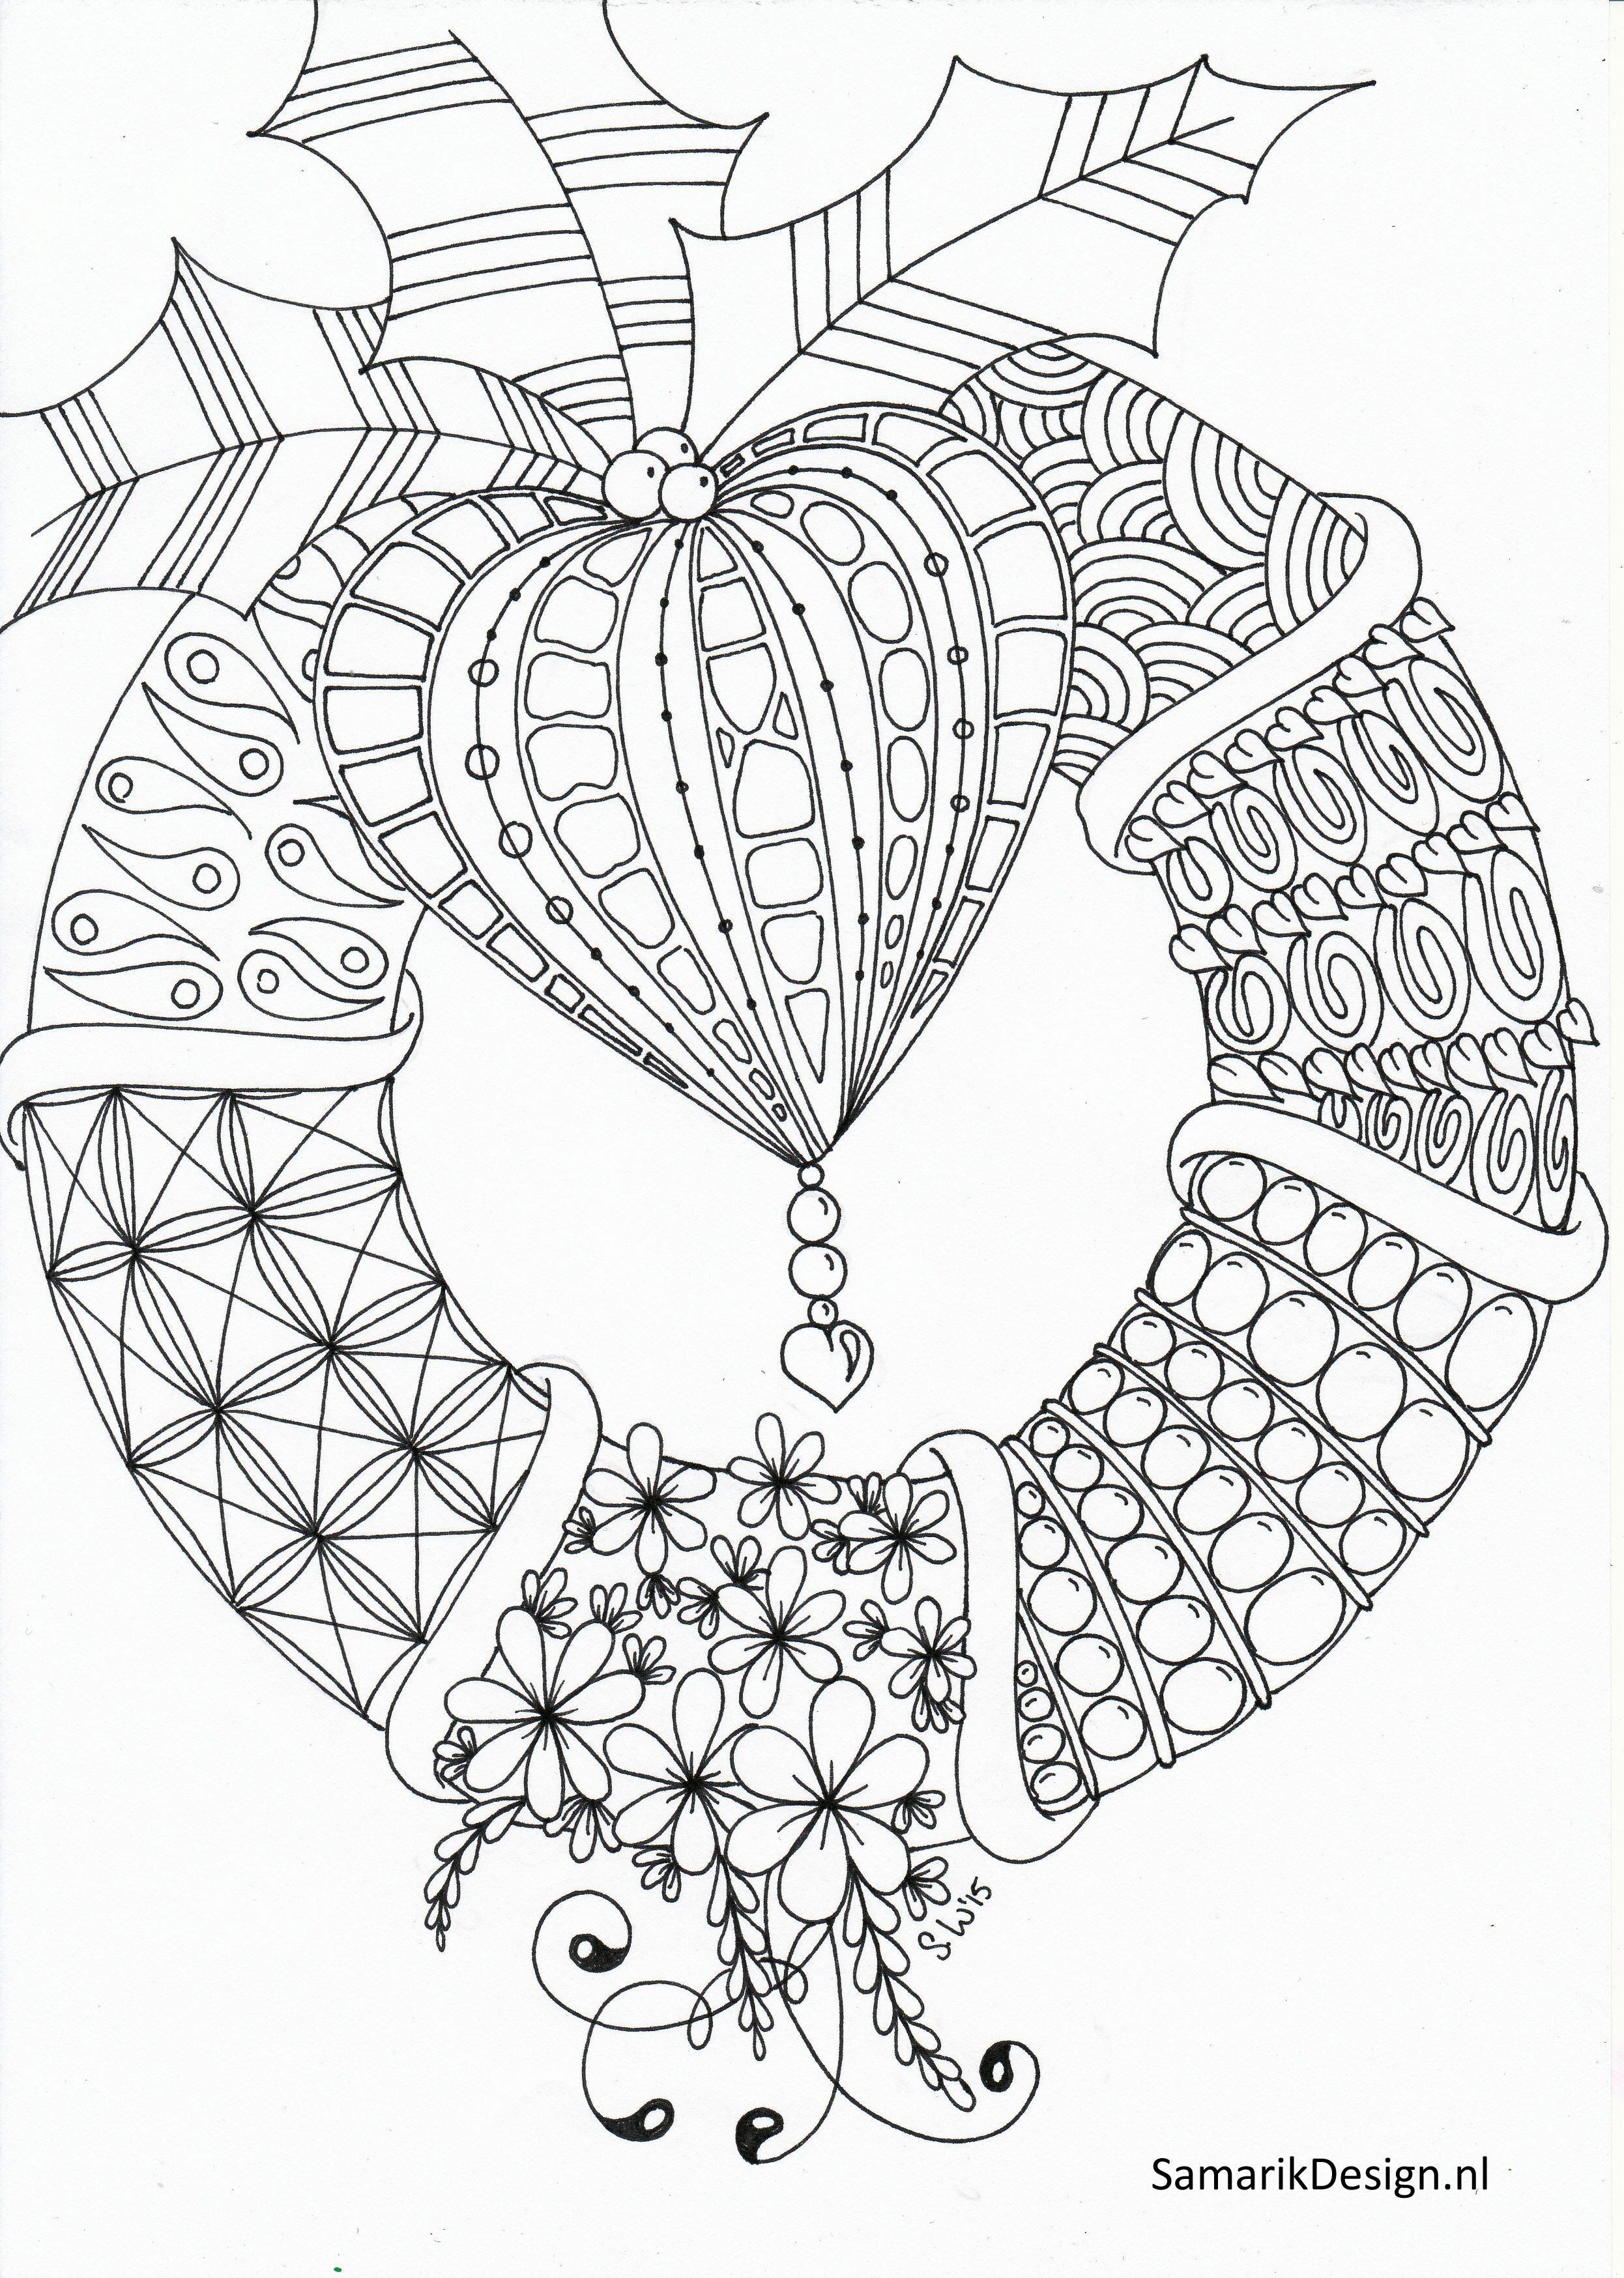 Awesome Christmas Wreath Coloring Pages For Adults Cool